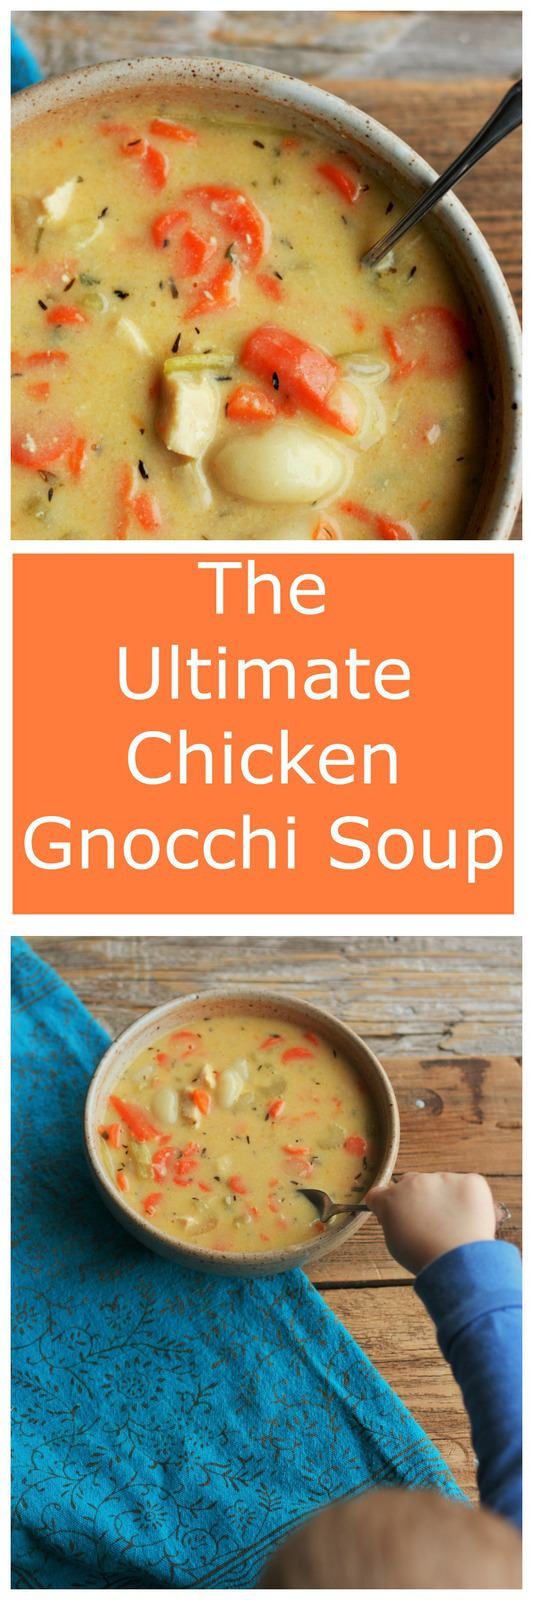 Chicken Gnocchi Soup is the ultimate healthy comfort food. Loaded with vegetables and packed with flavor, Chicken Gnocchi Soup is your new favorite food.